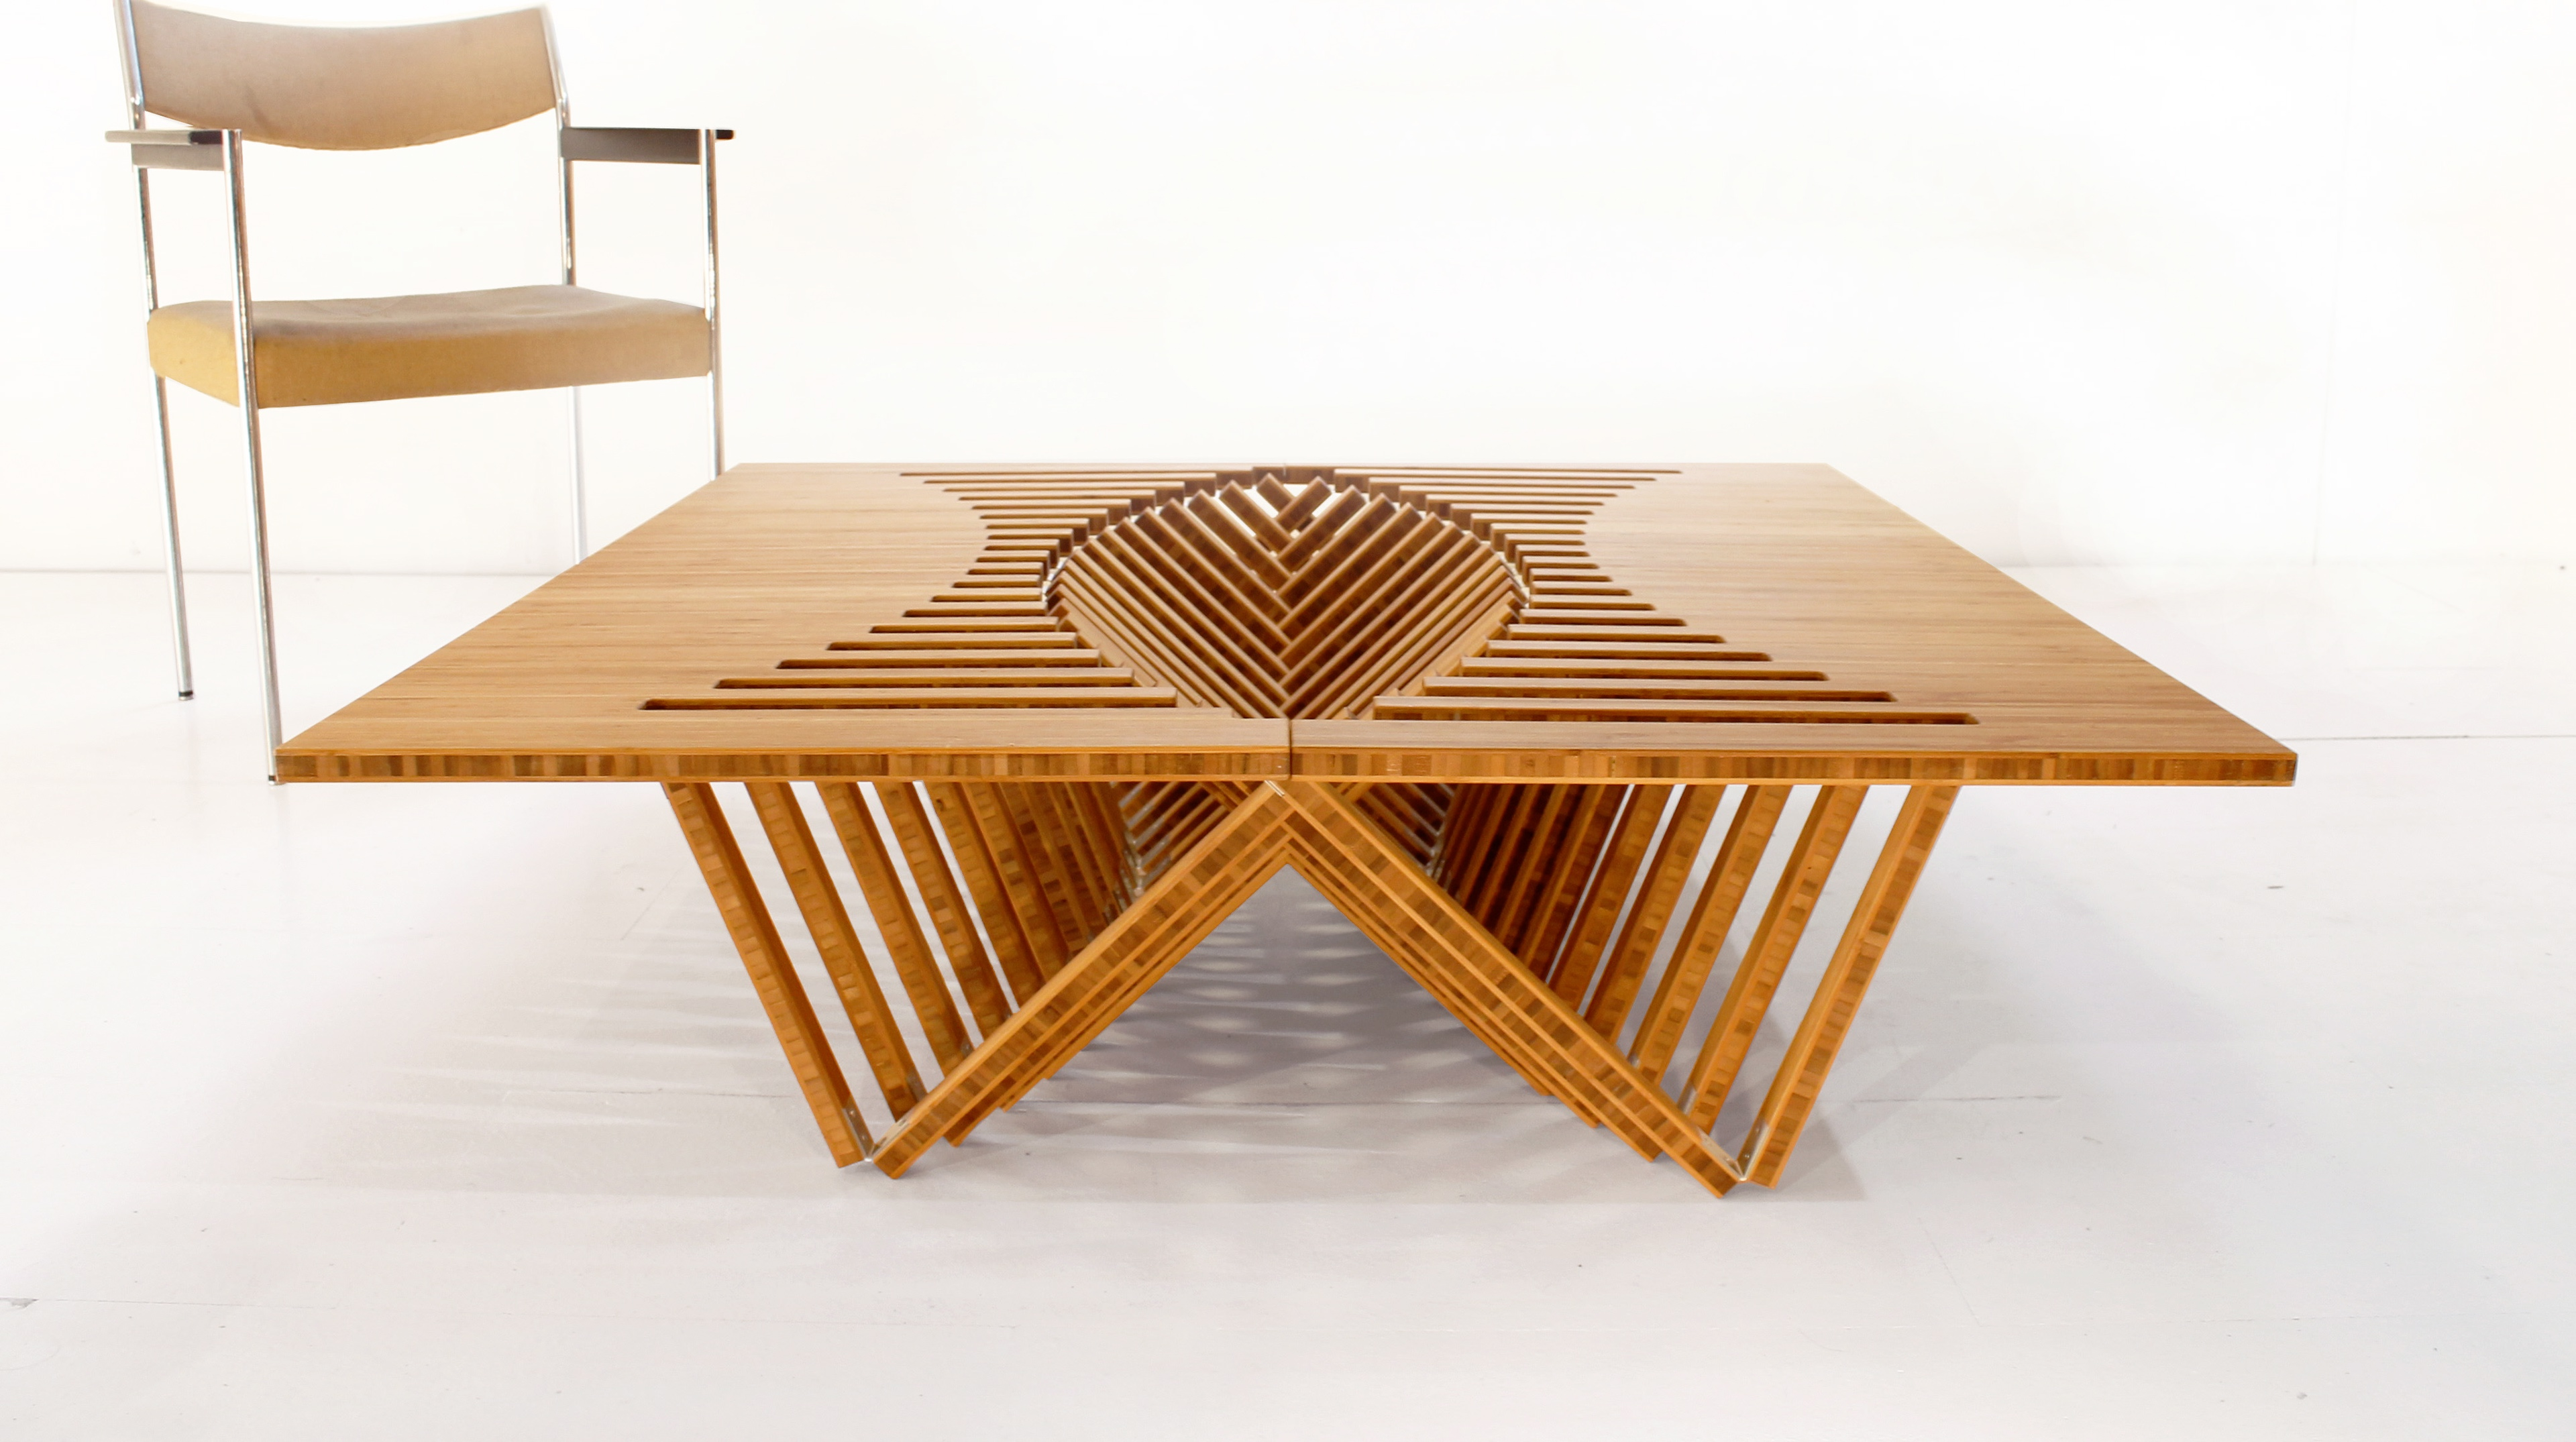 Rising Table by Robert van Embricqs on Behance